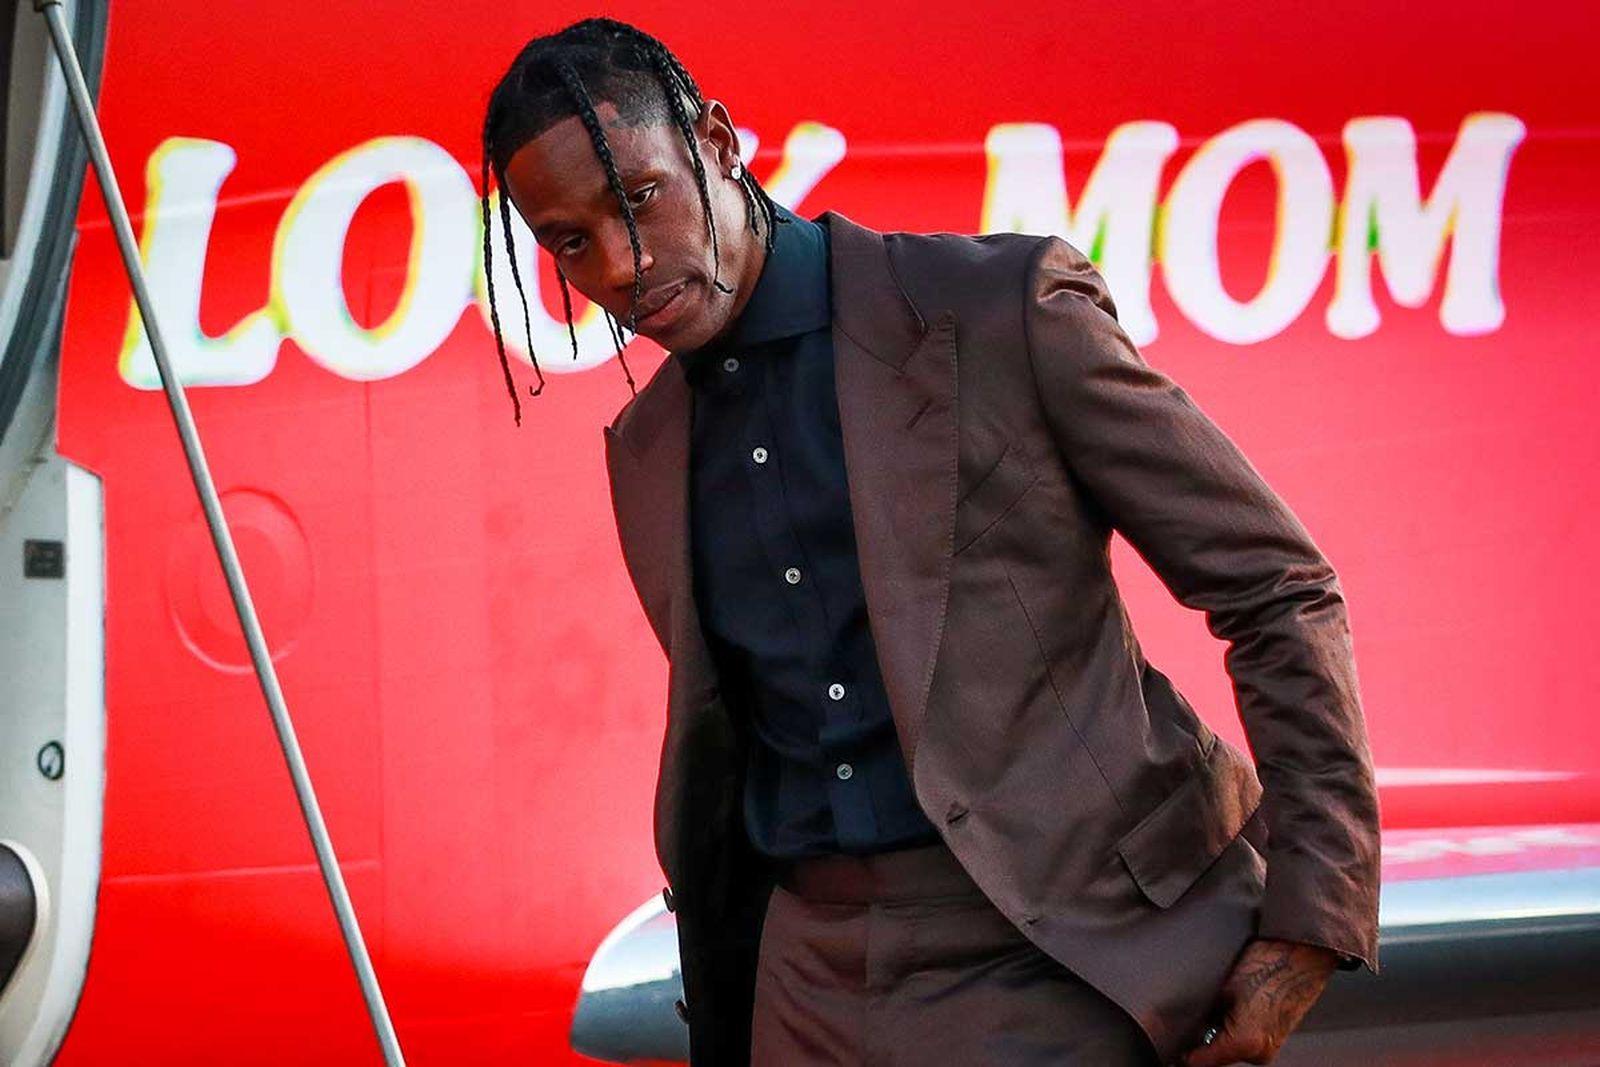 travis scott drops merch announces new music Look Mom I Can Fly